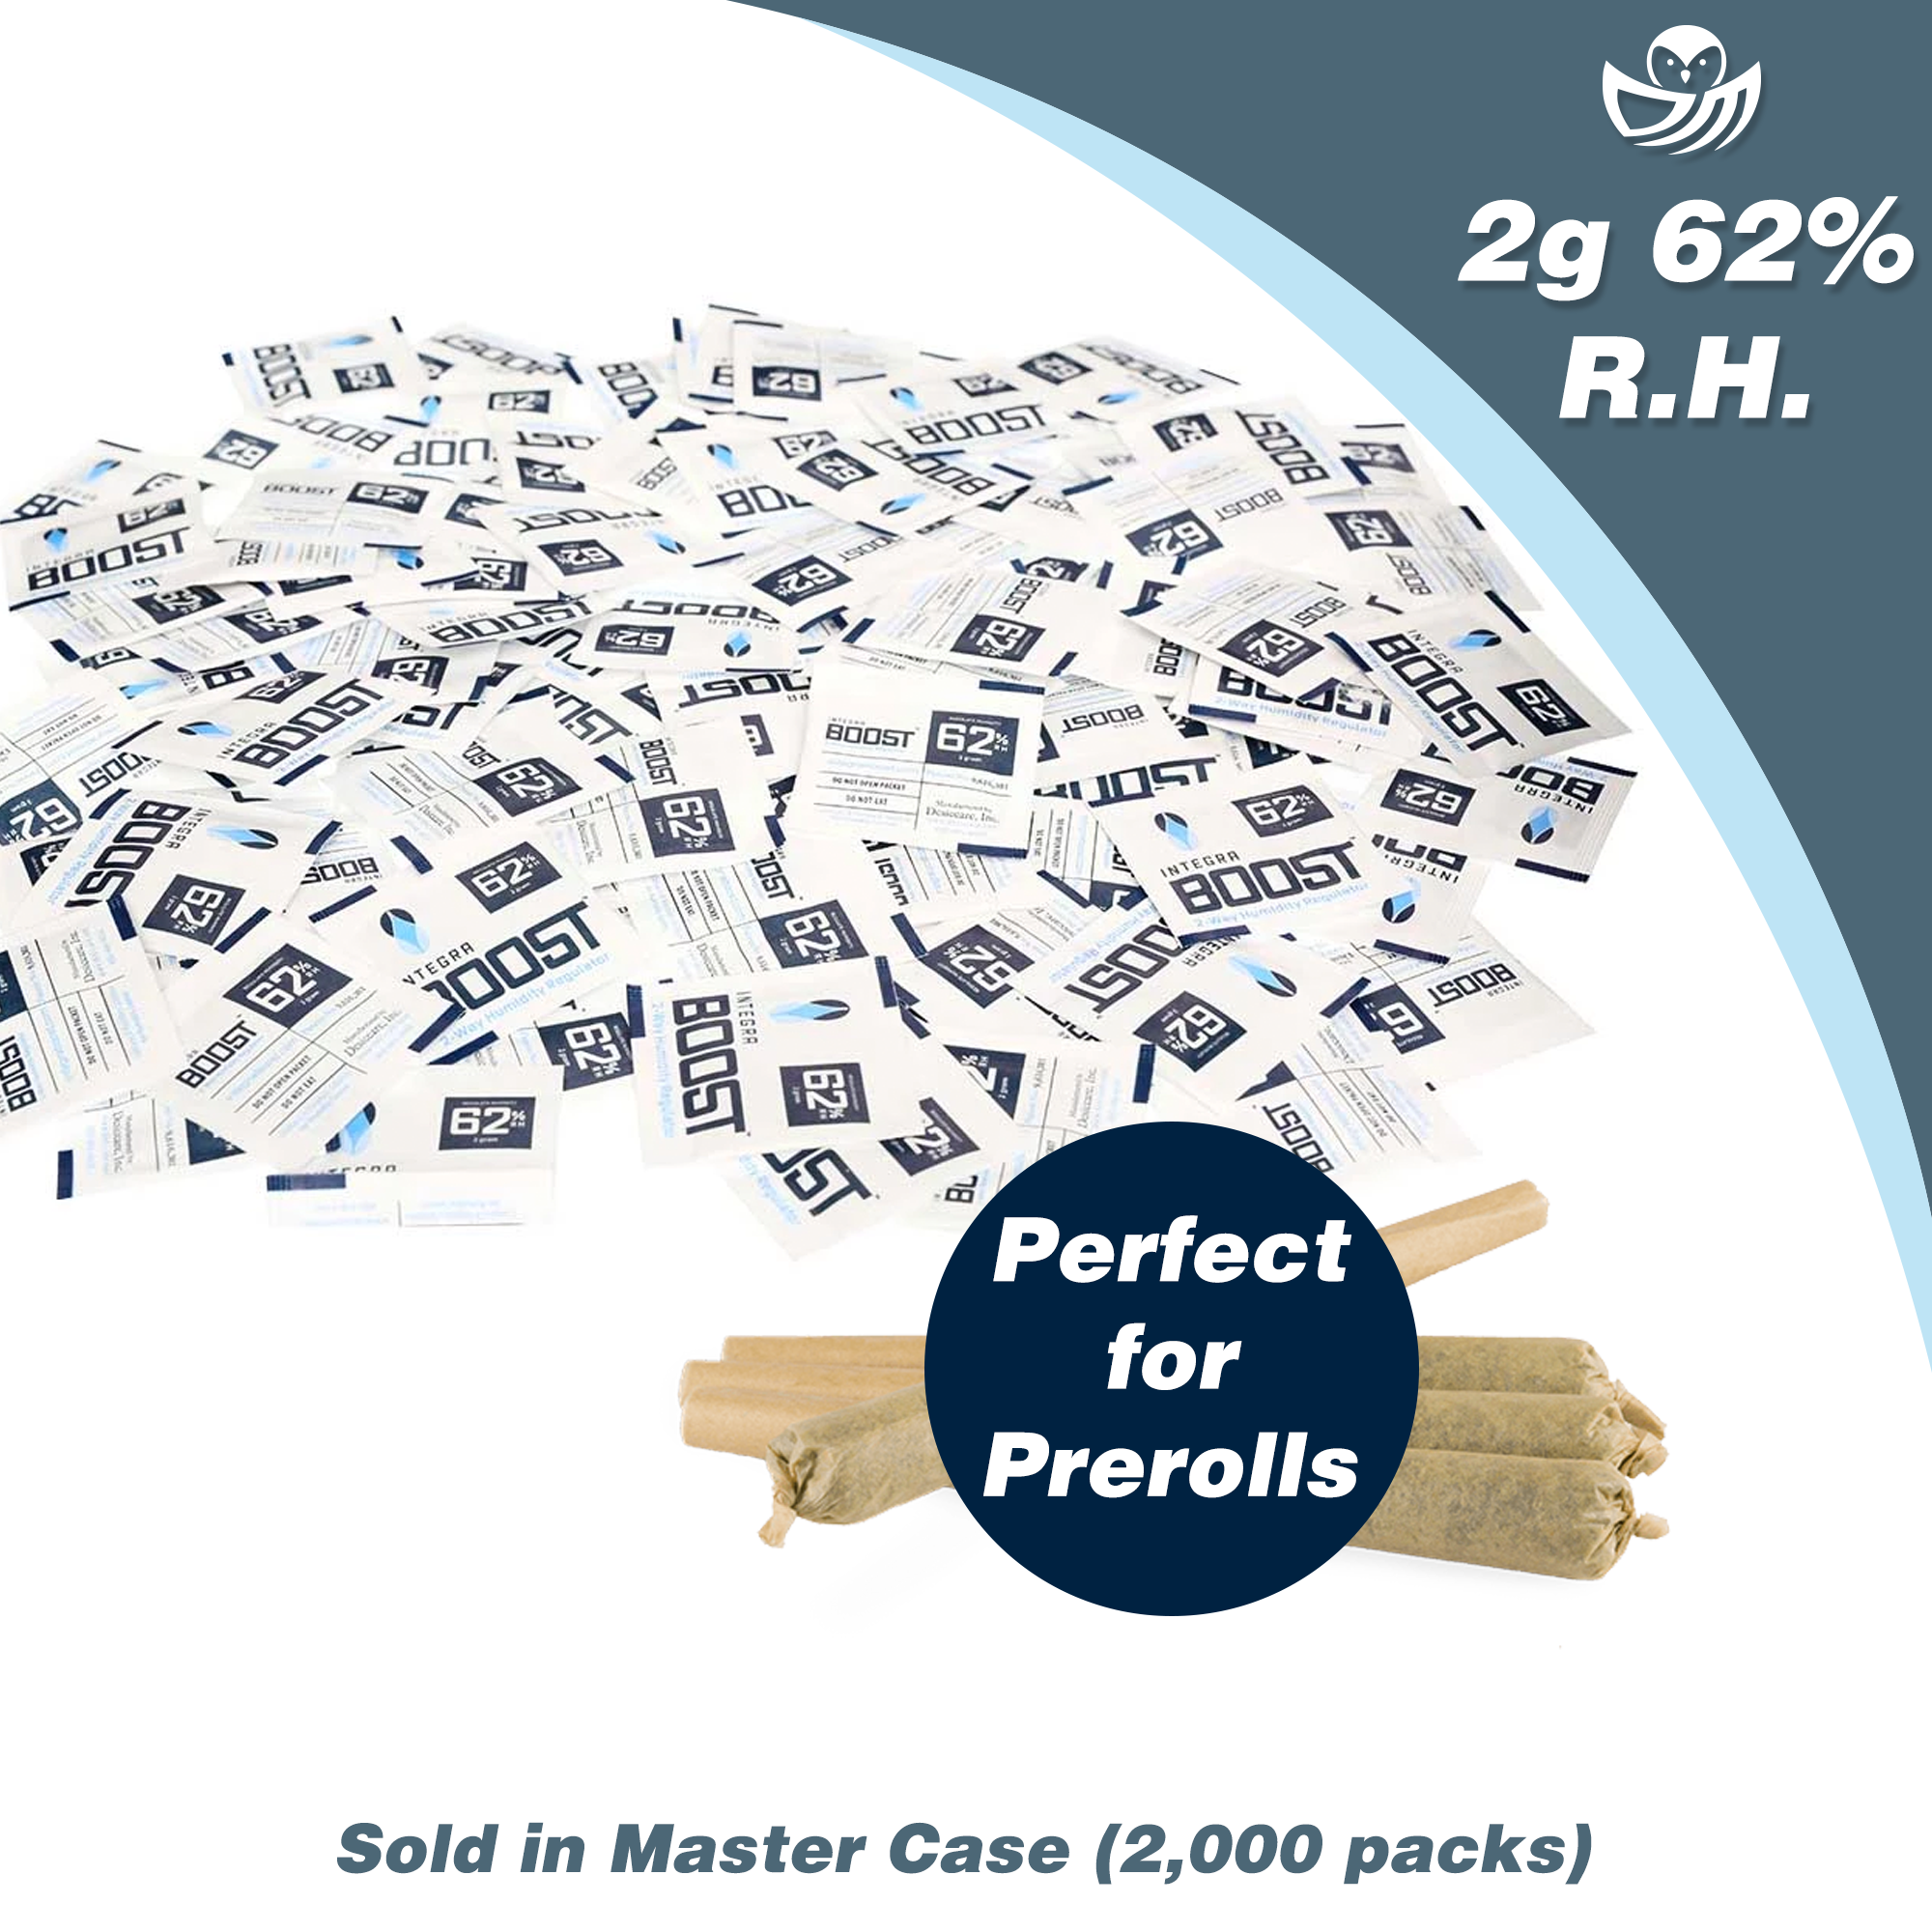 2g Integra Boost 62% RH - Master Case (2000 packs)